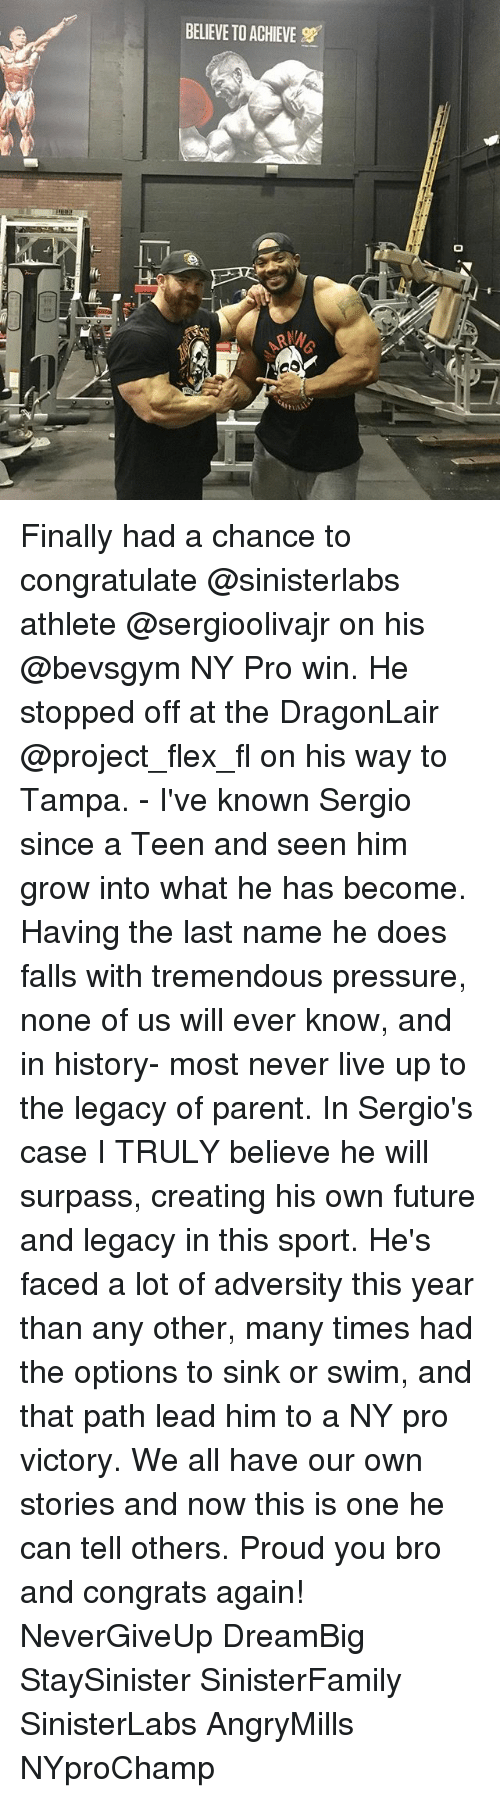 Flexing, Future, and Memes: BELIEVE TO ACHIEVE Finally had a chance to congratulate @sinisterlabs athlete @sergioolivajr on his @bevsgym NY Pro win. He stopped off at the DragonLair @project_flex_fl on his way to Tampa. - I've known Sergio since a Teen and seen him grow into what he has become. Having the last name he does falls with tremendous pressure, none of us will ever know, and in history- most never live up to the legacy of parent. In Sergio's case I TRULY believe he will surpass, creating his own future and legacy in this sport. He's faced a lot of adversity this year than any other, many times had the options to sink or swim, and that path lead him to a NY pro victory. We all have our own stories and now this is one he can tell others. Proud you bro and congrats again! NeverGiveUp DreamBig StaySinister SinisterFamily SinisterLabs AngryMills NYproChamp